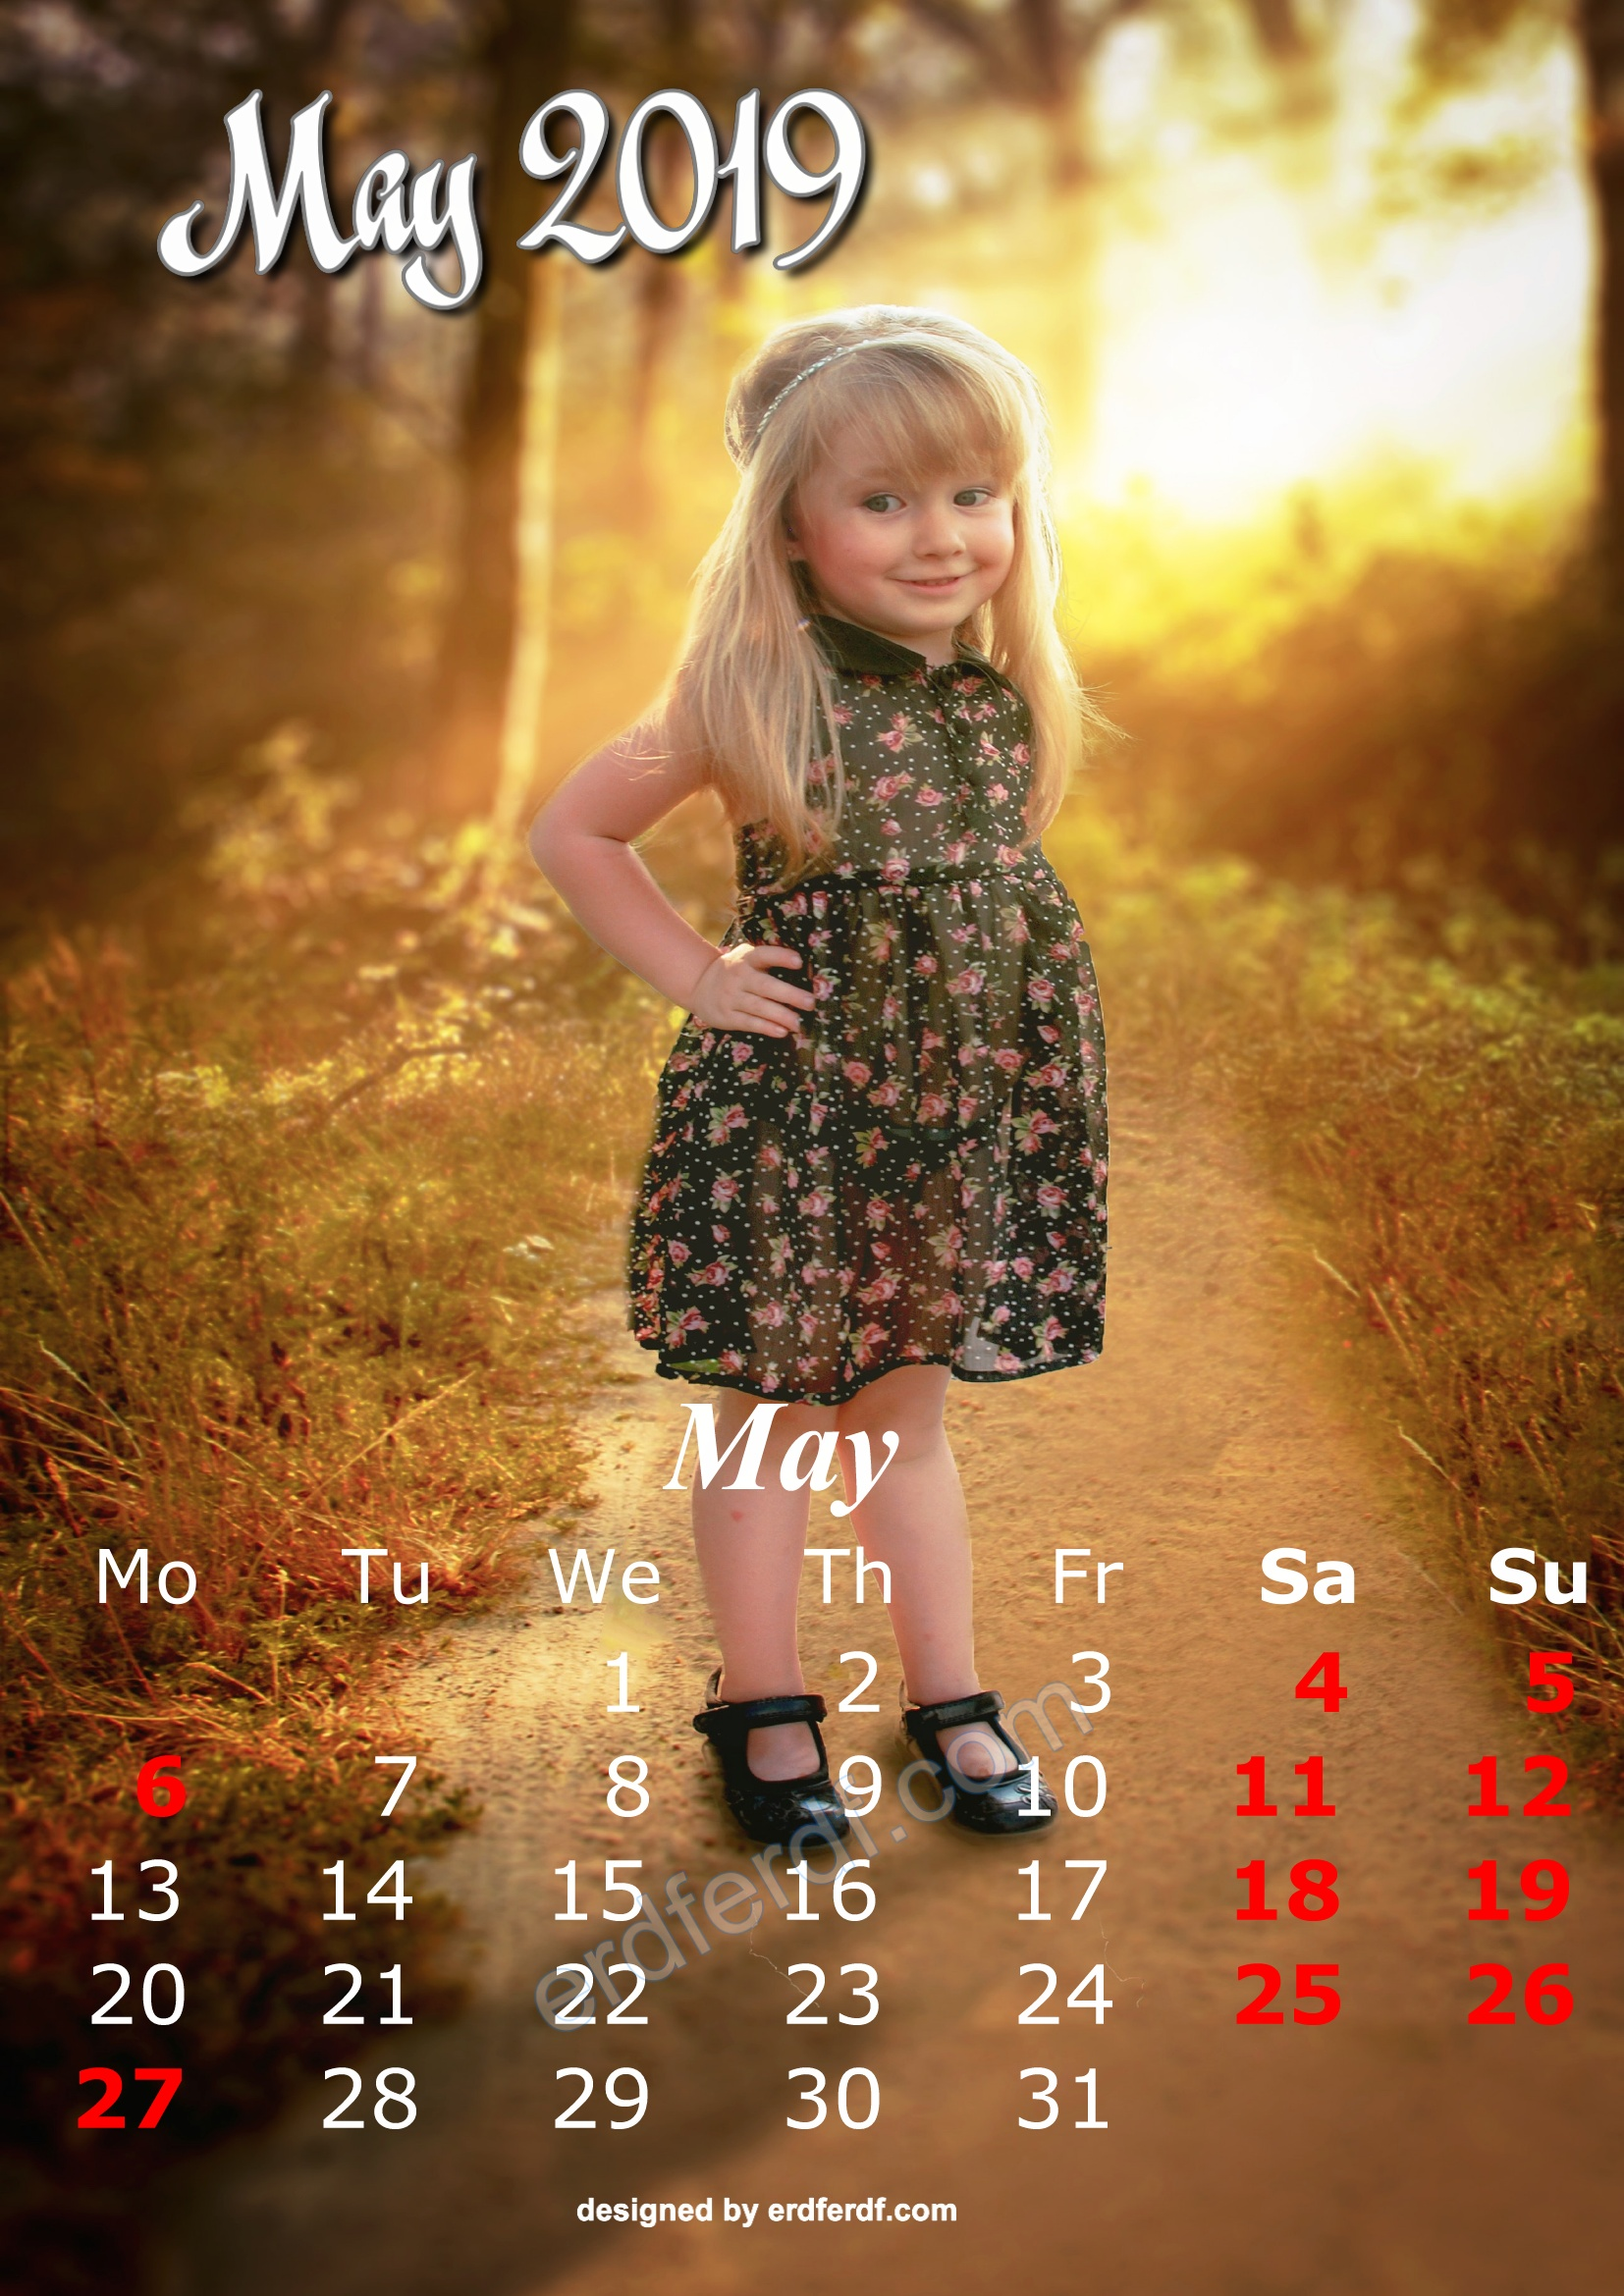 5 May Cute Kids Calendar 2019 Printable Free Design